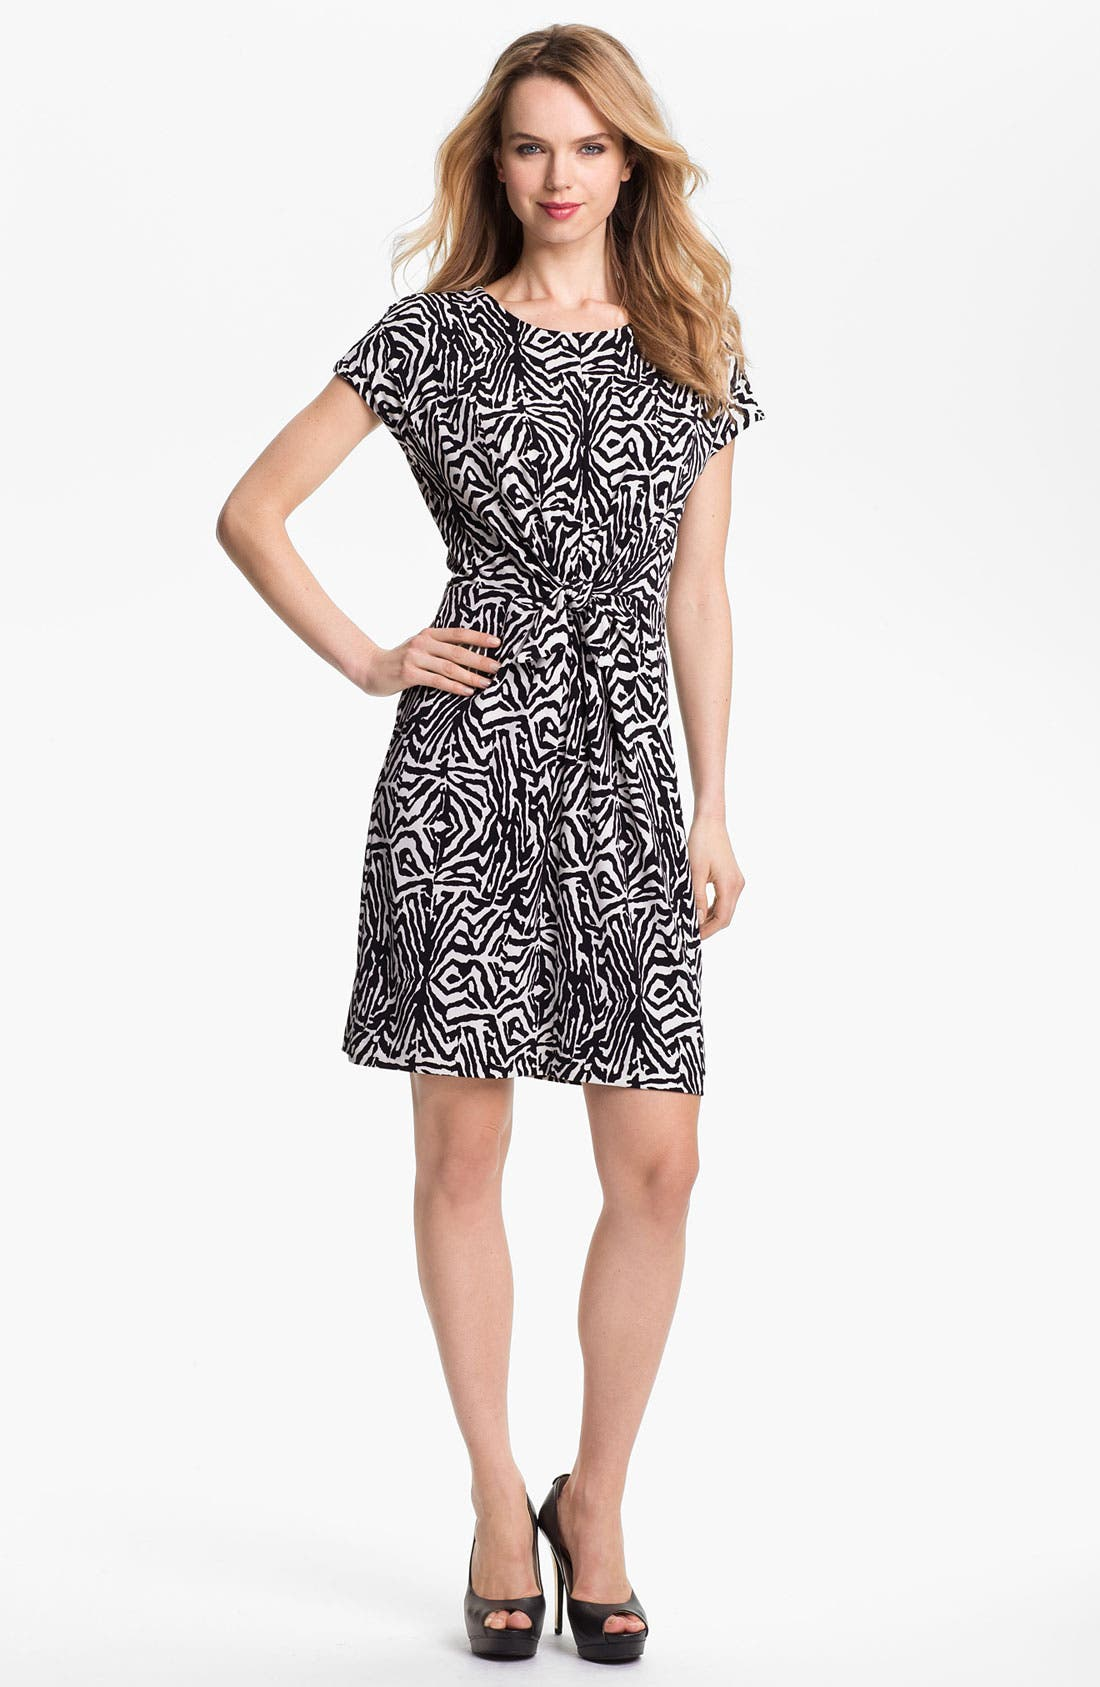 Main Image - Vince Camuto Tie Front Print Dress